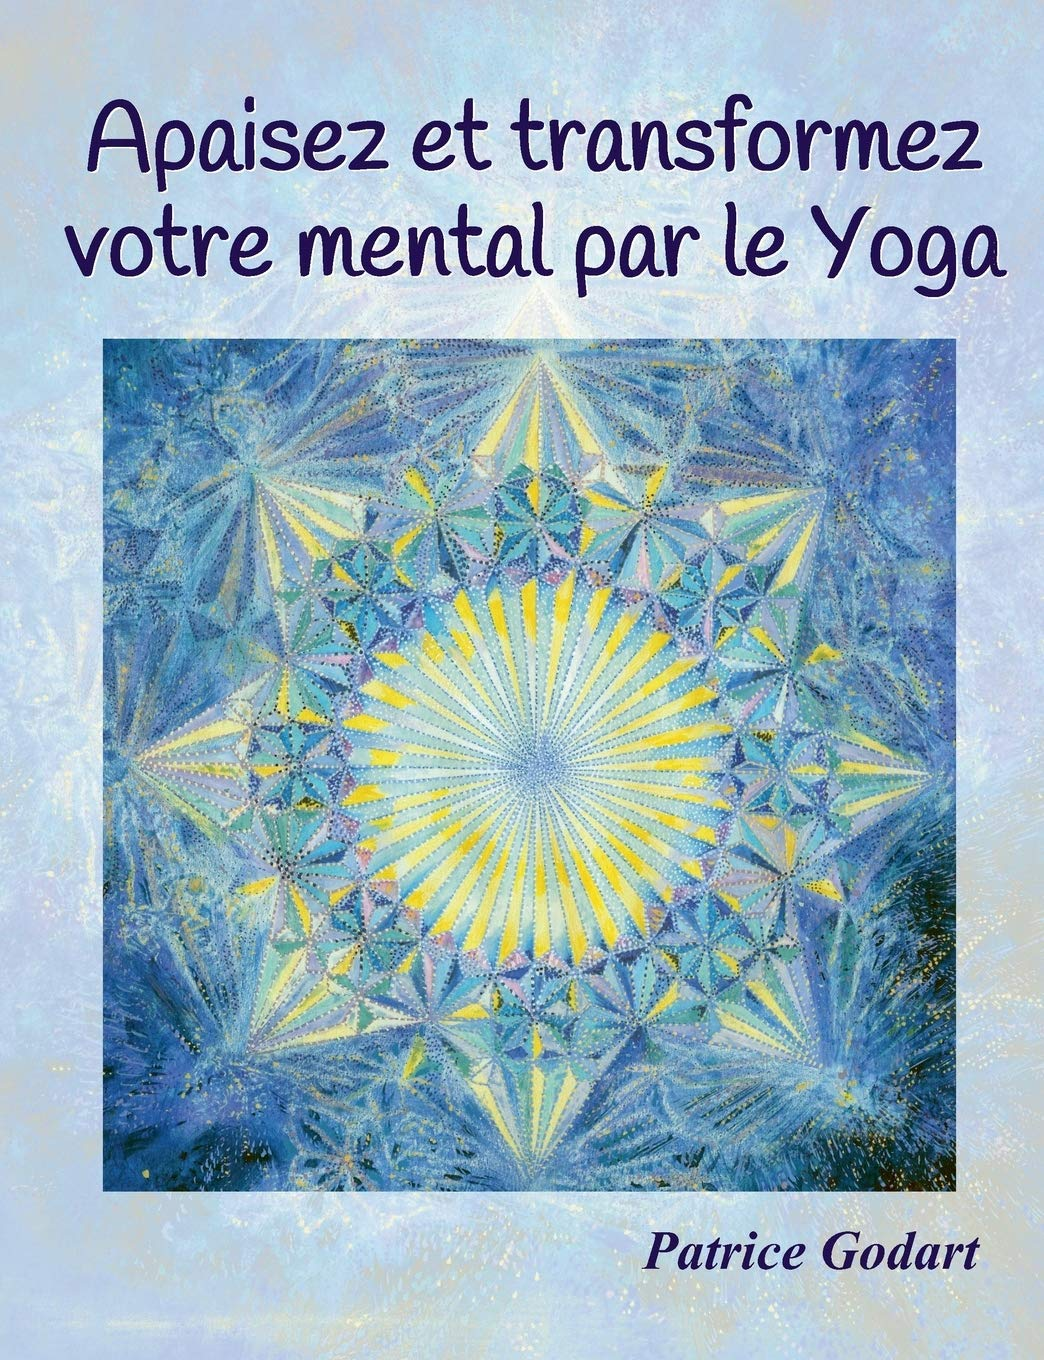 Apaisez et transformez votre mental par le Yoga: Amazon.es ...